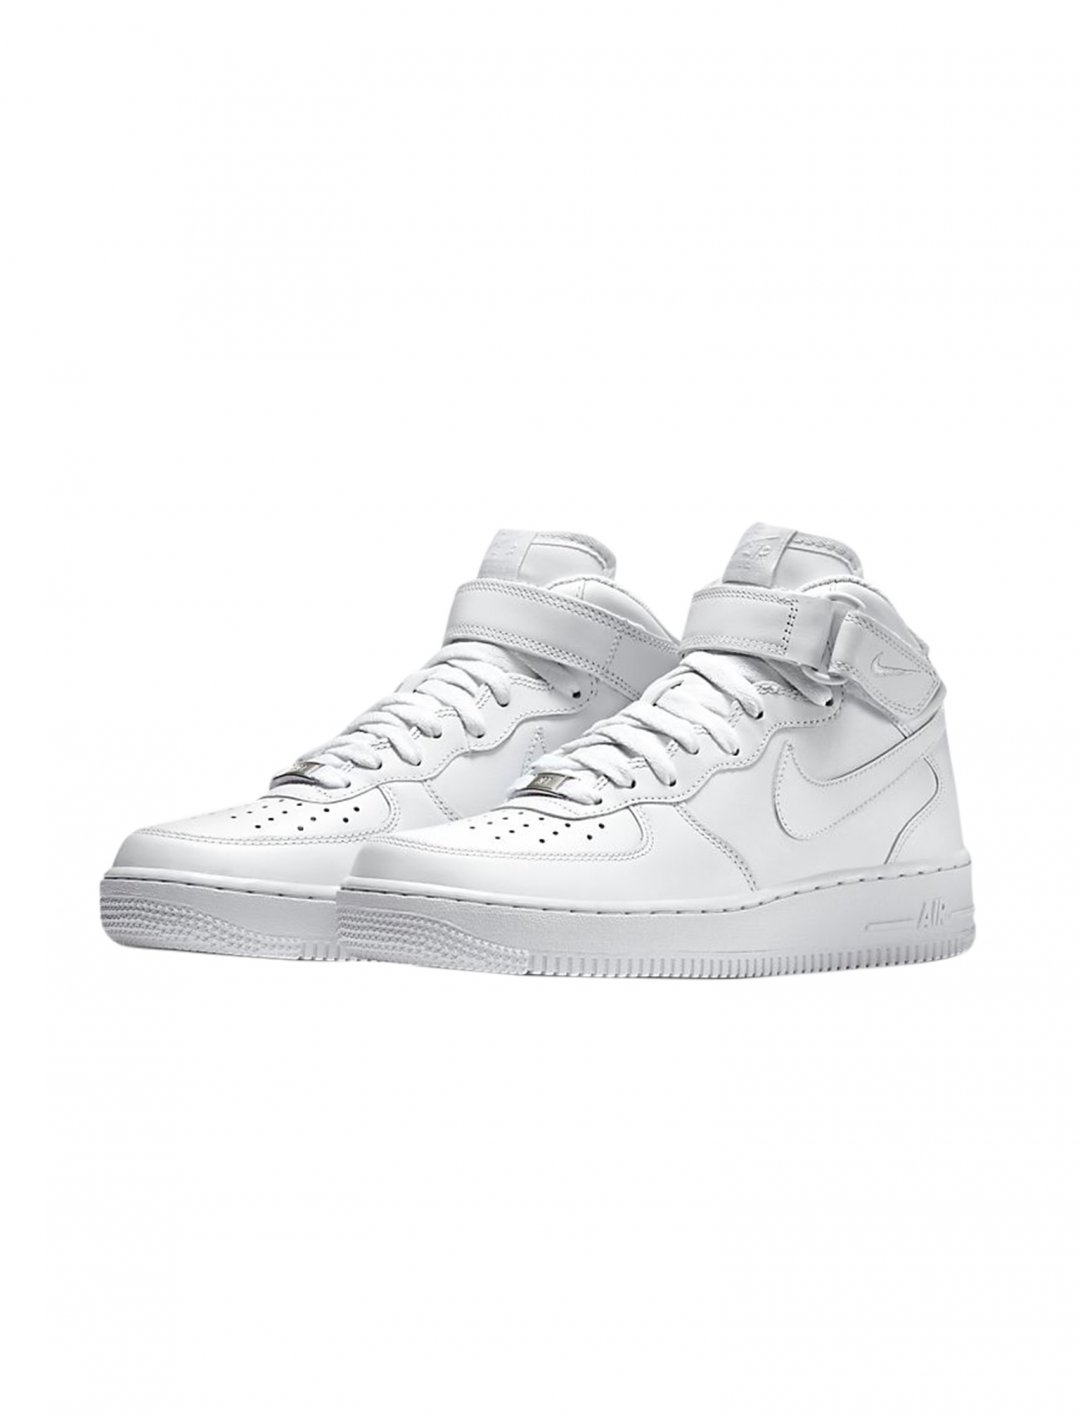 "Hex' Air Force Sneakers {""id"":12,""product_section_id"":1,""name"":""Shoes"",""order"":12} Nike"